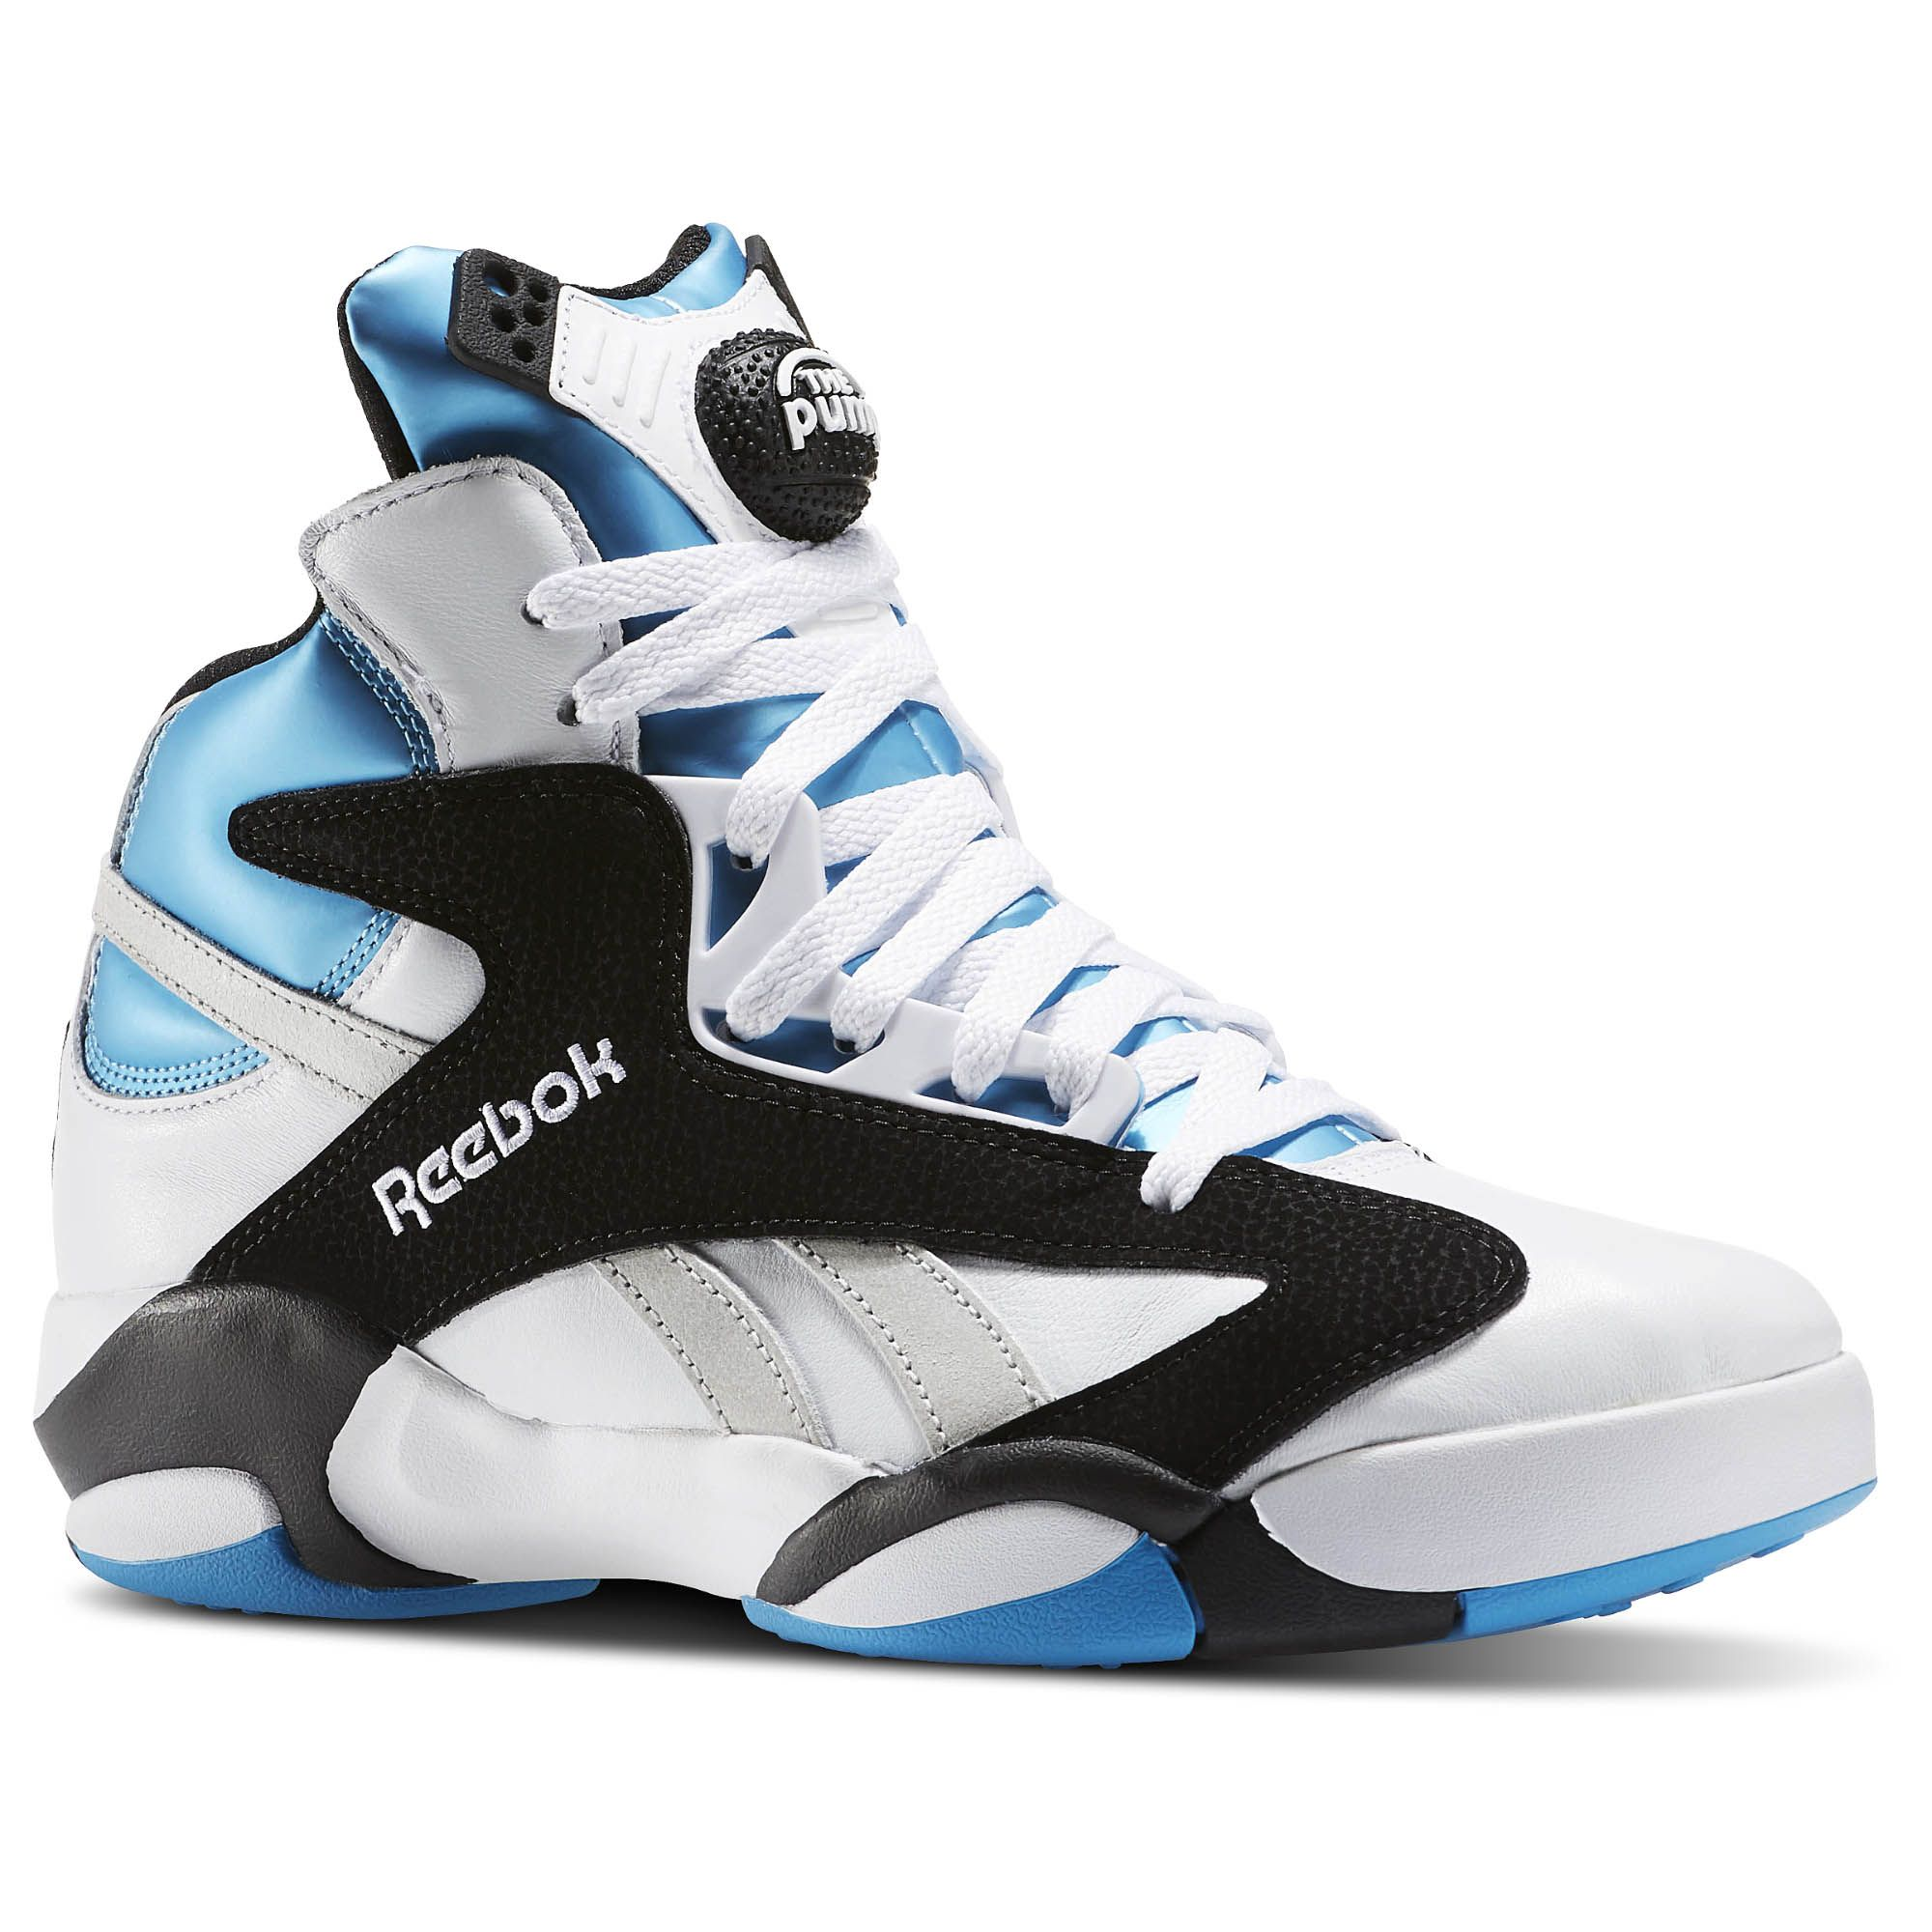 36ca2590f895 The Shaq Attaq is back. This winter Reebok brings back one of their  greatest basketball sneakers of all time